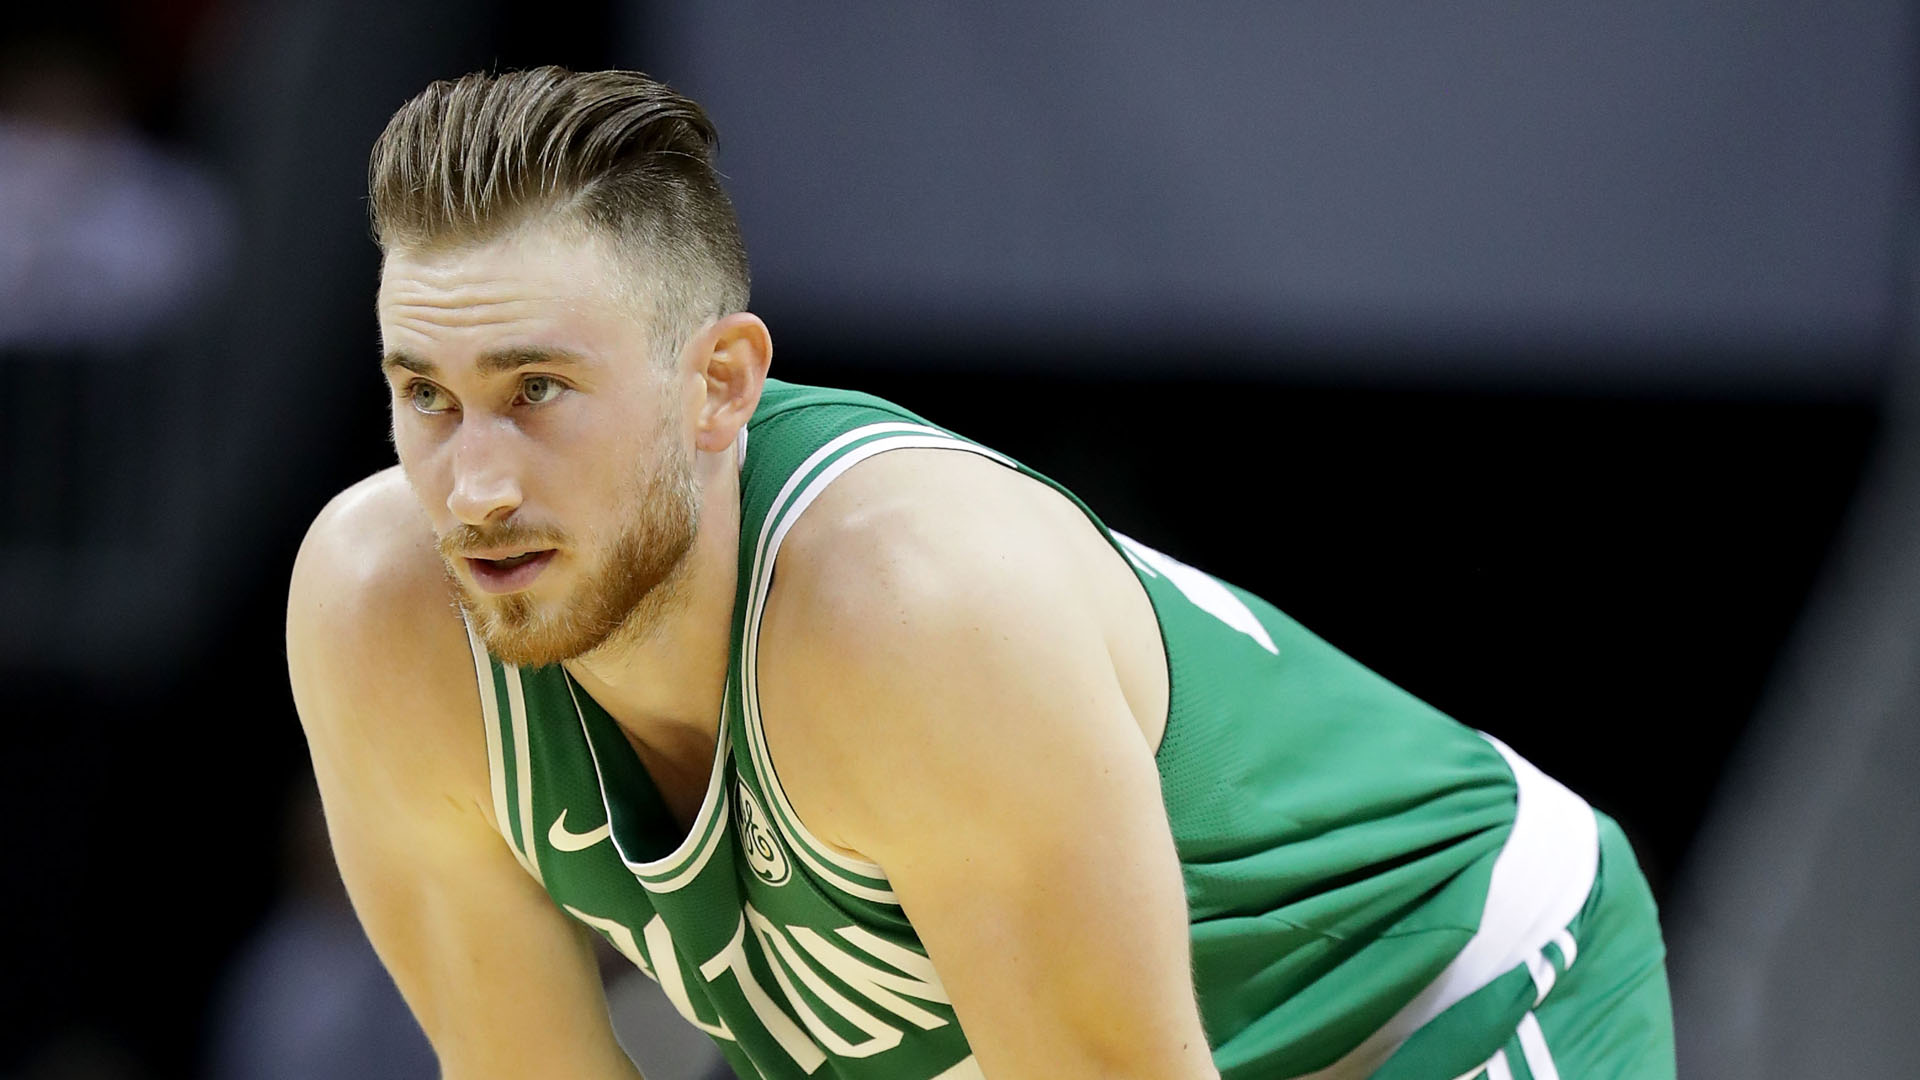 Hayward has surgery, unlikely to return this season